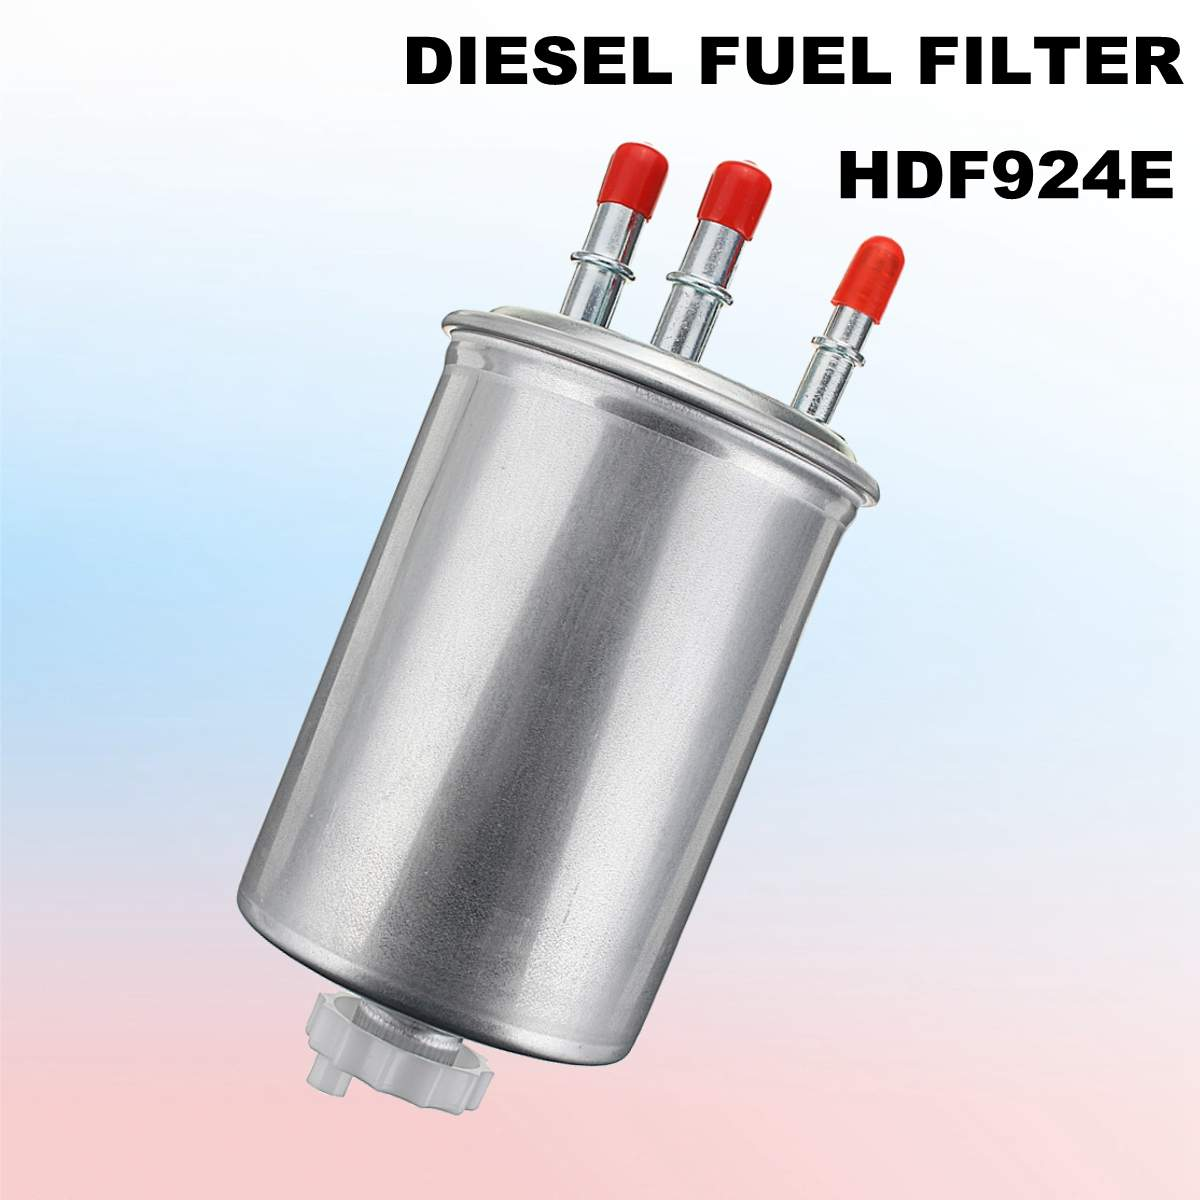 Universal Metal Fuel Filters Metal For Diesel Filter Connect HDF924E For Ford For Mondeo For MK3 2.0 2.2 DI TDCI TDDIUniversal Metal Fuel Filters Metal For Diesel Filter Connect HDF924E For Ford For Mondeo For MK3 2.0 2.2 DI TDCI TDDI